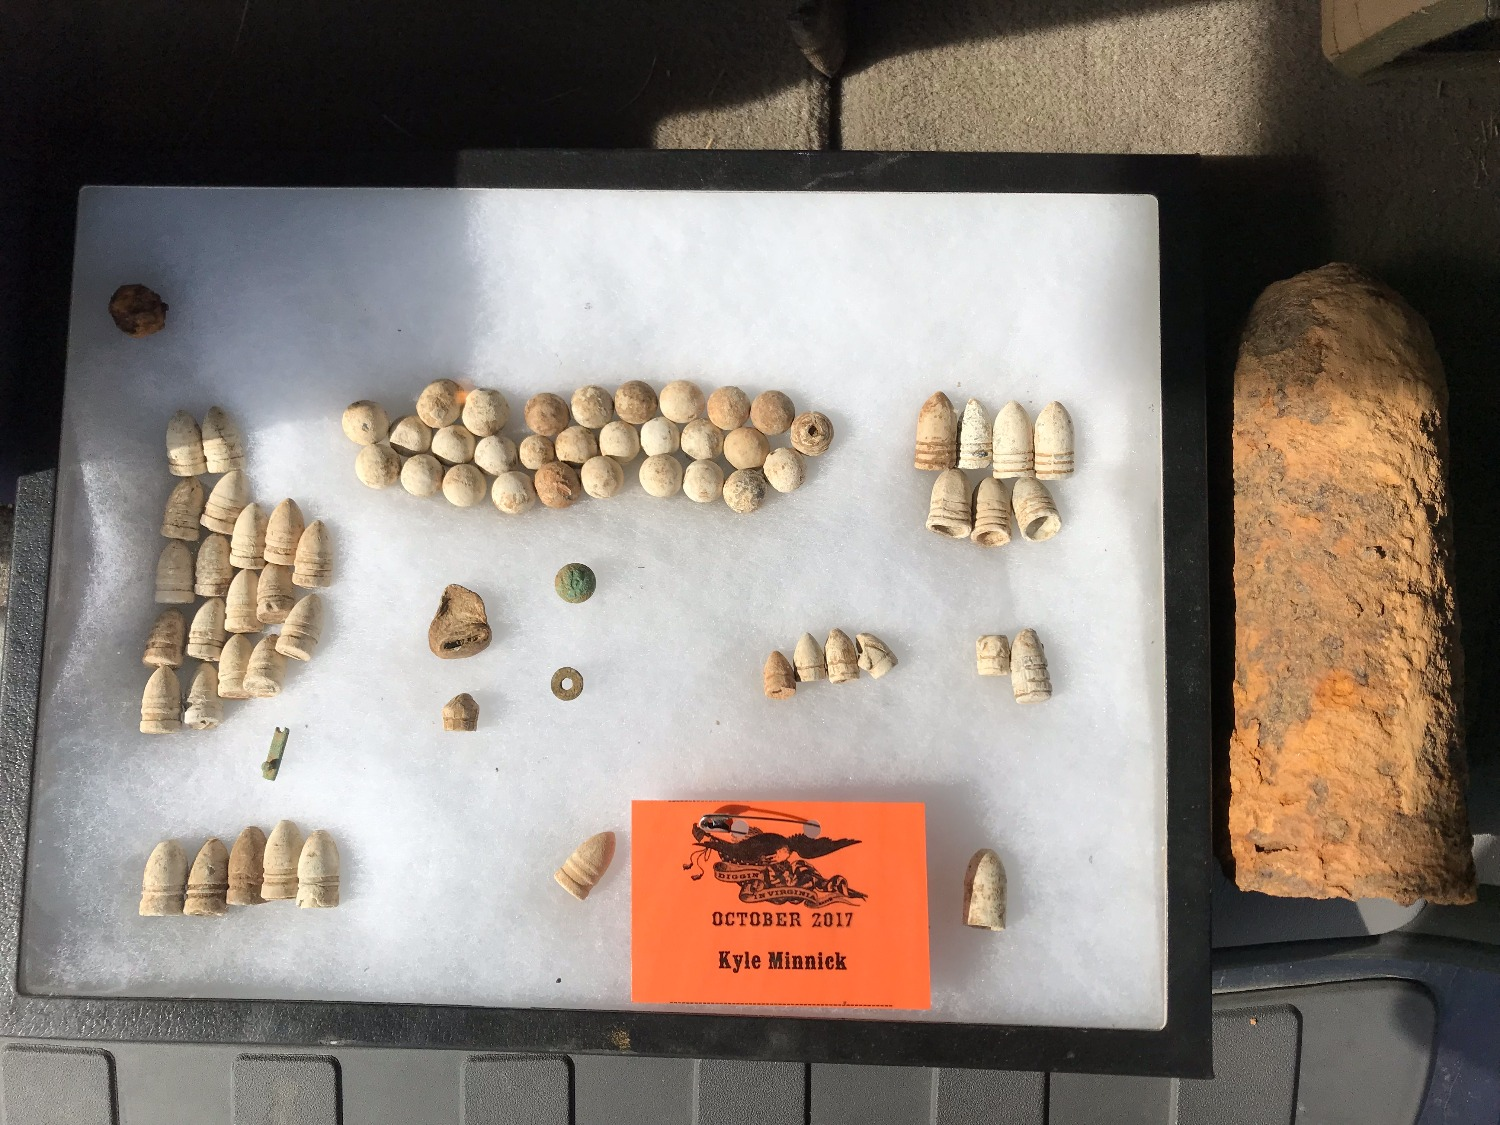 Kyle's finds for the hunt